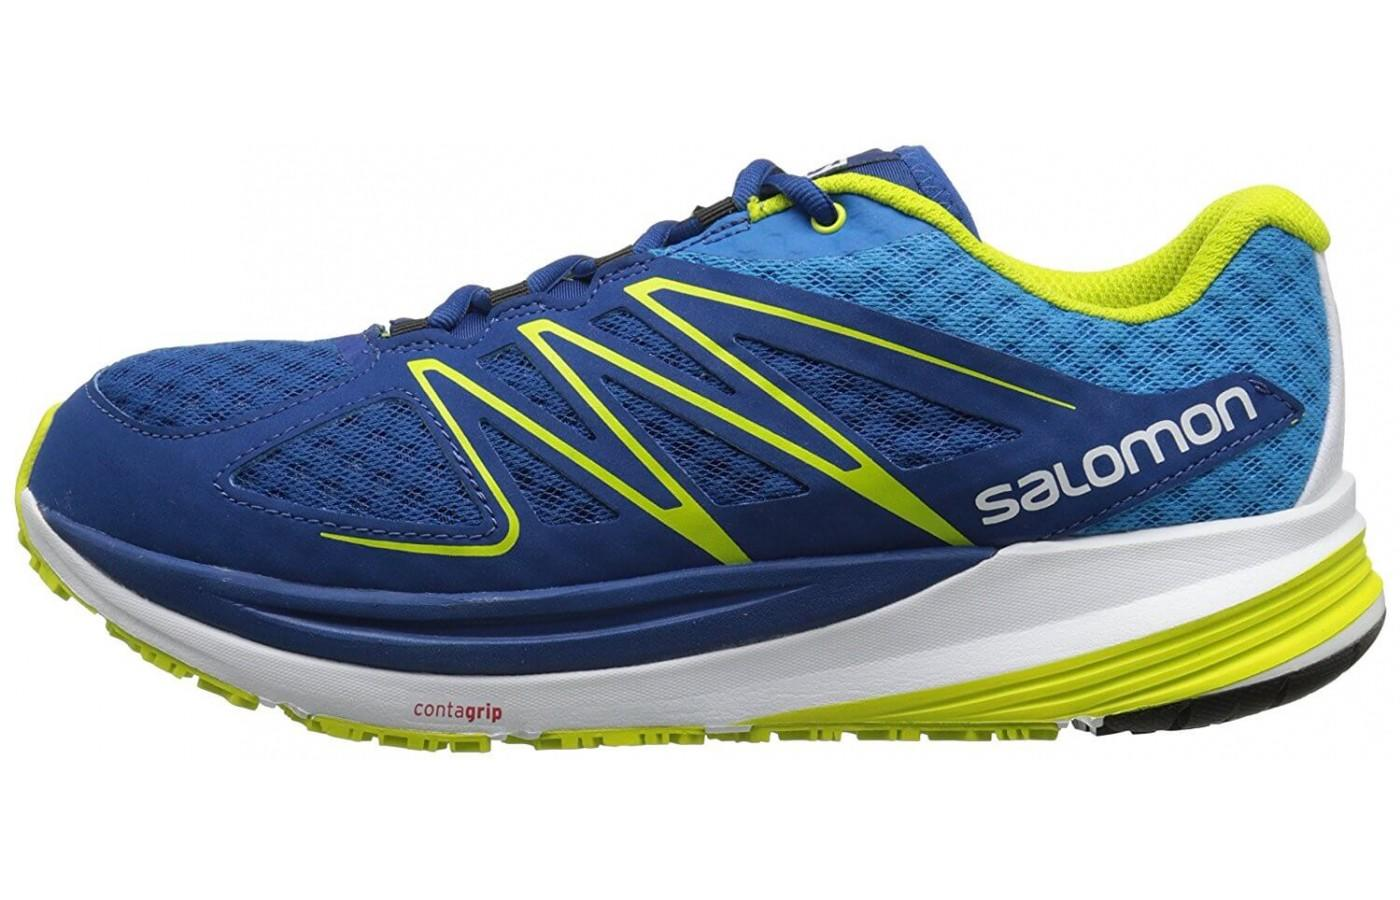 Salomon Sense Pulse has a rocker profile